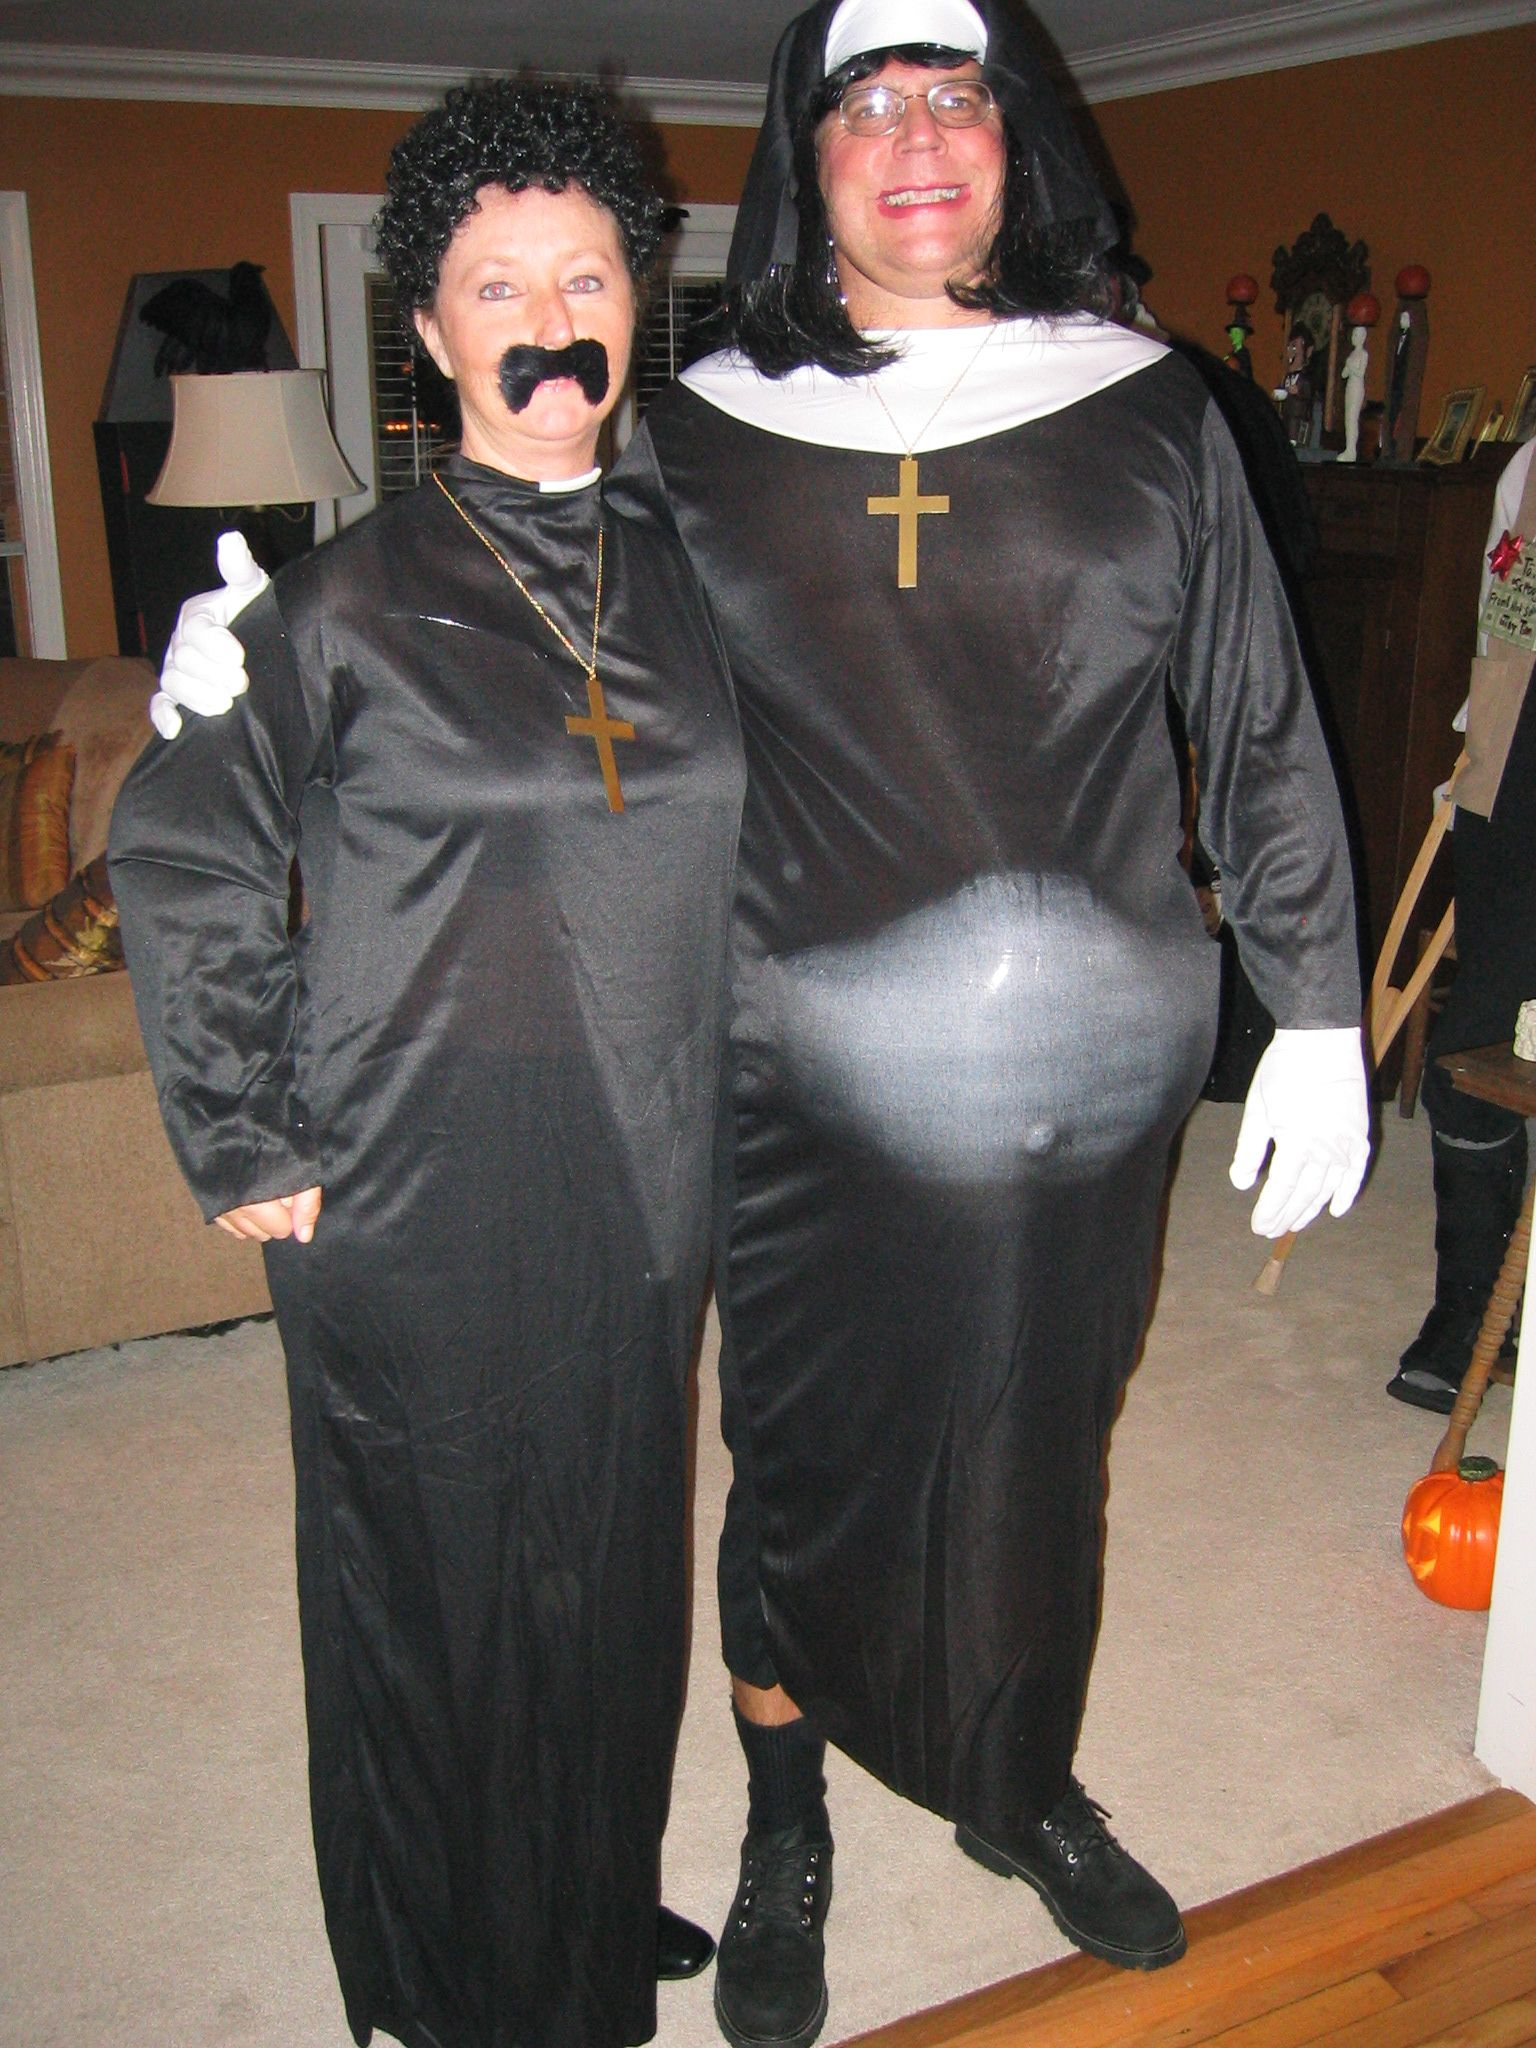 A Sexy Nun Costume For Halloween | Nun Costumes | Pinterest | Nun ...